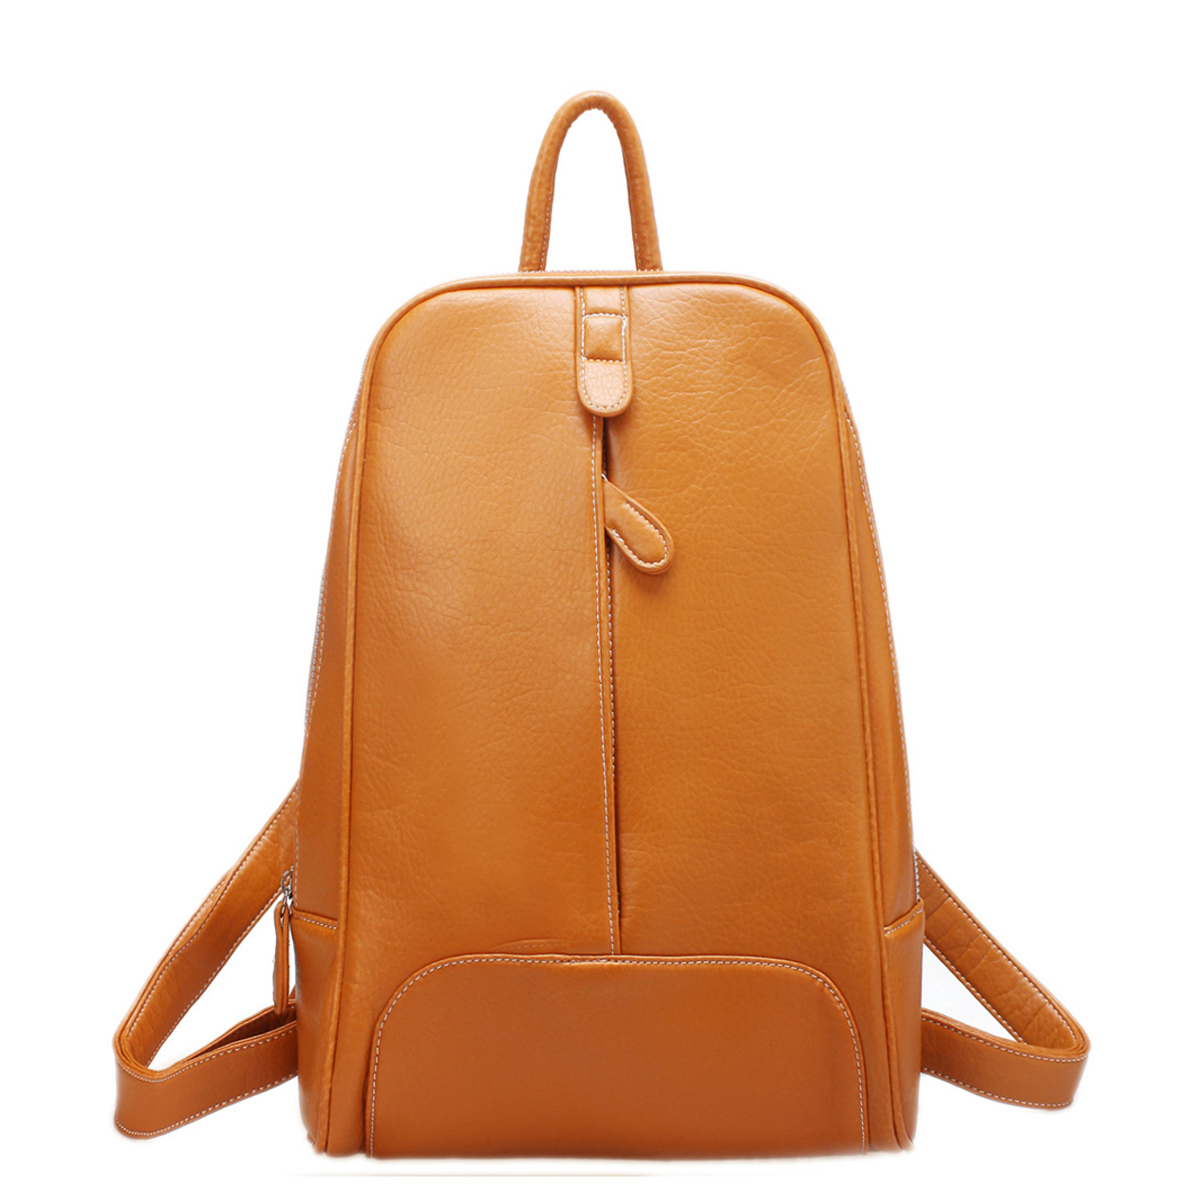 Designer Backpack Purse - Crazy Backpacks